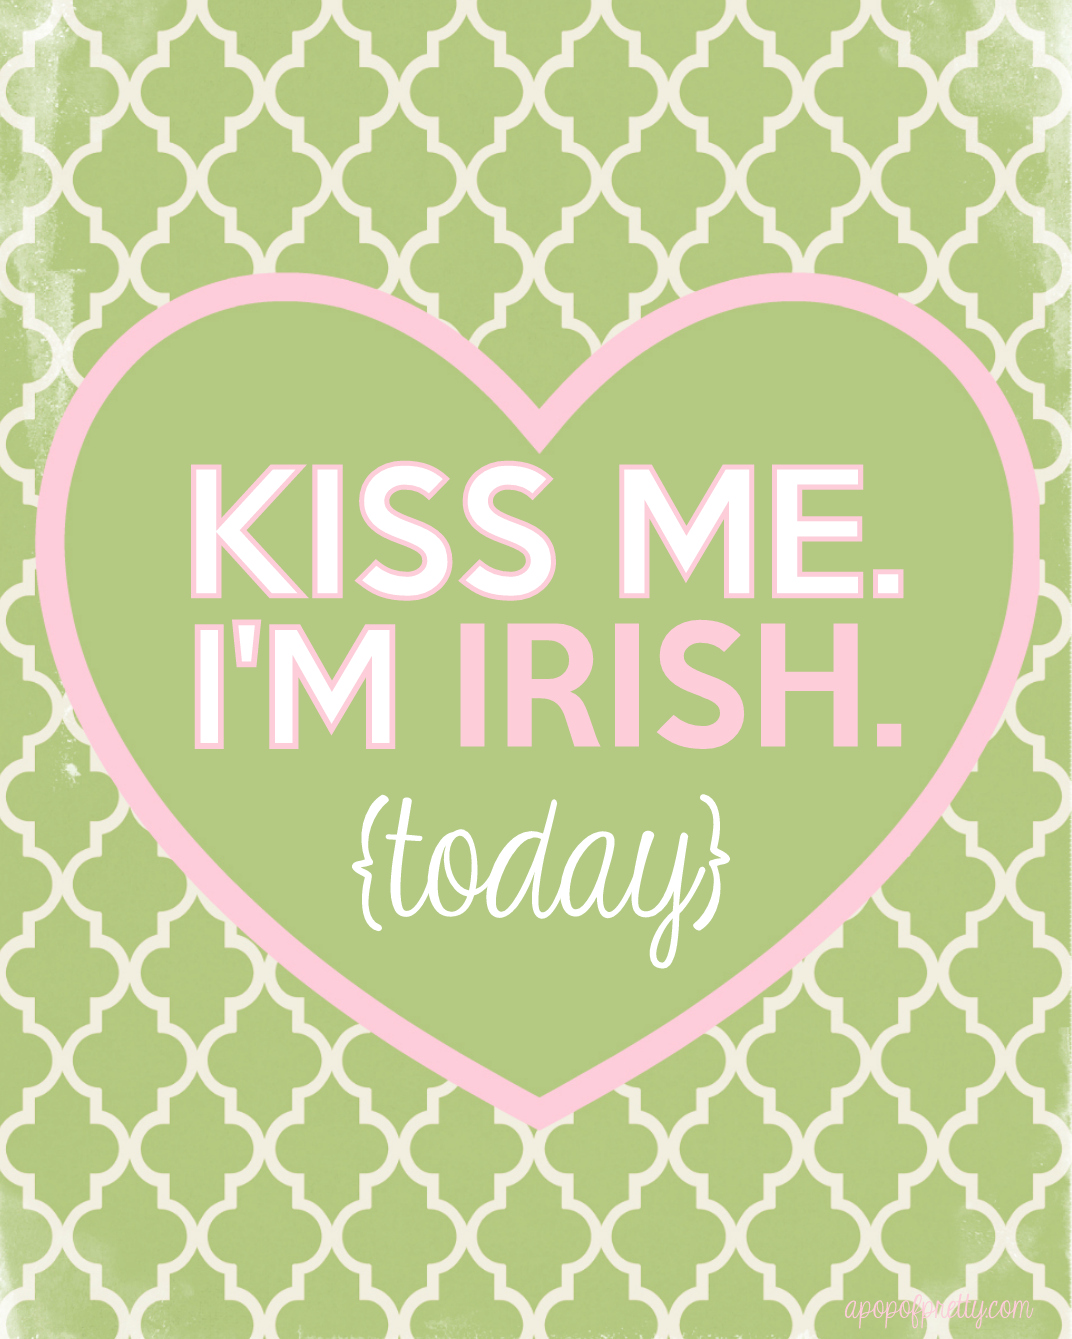 St Patricks Day Kiss me I'm Irish printable 2013-300dpi